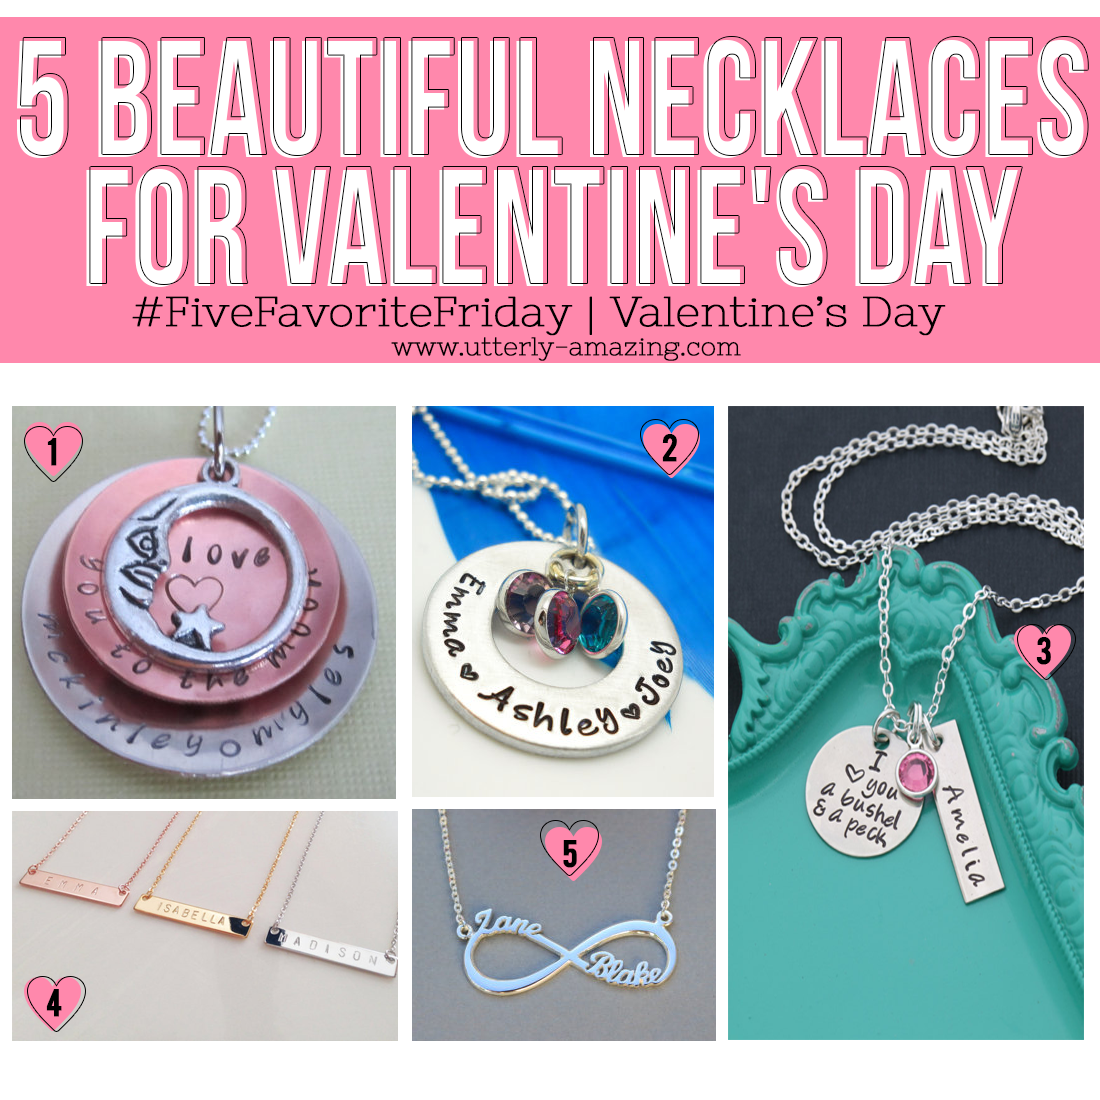 5 Beautiful Necklaces From Etsy For Valentine's Day